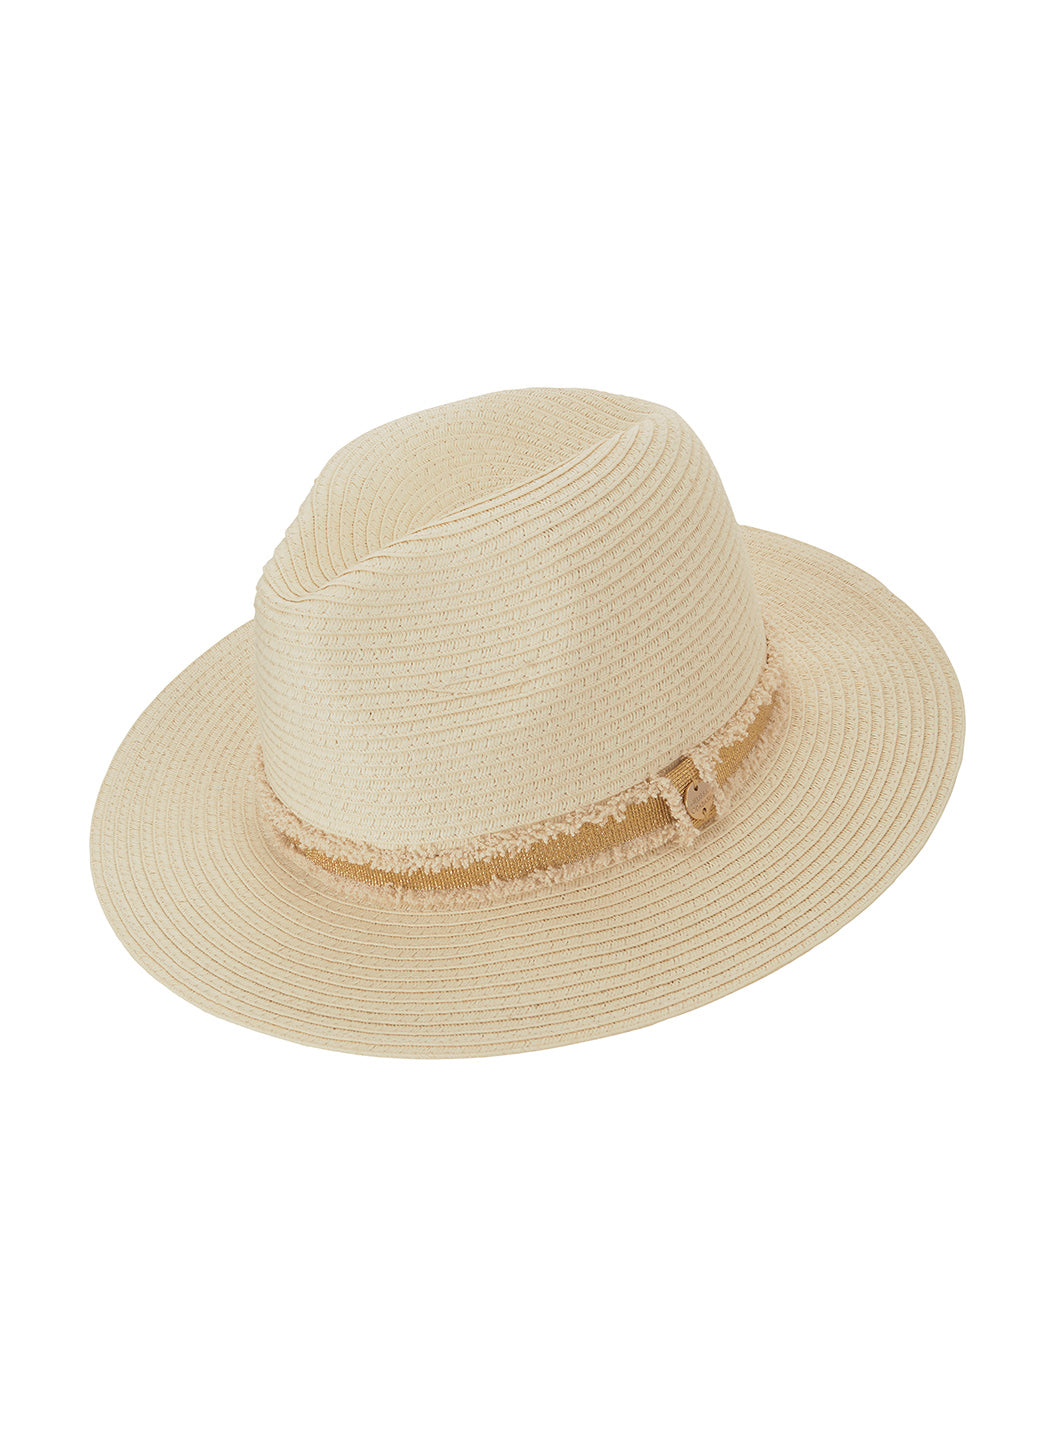 Fedora Hat Cream/Gold